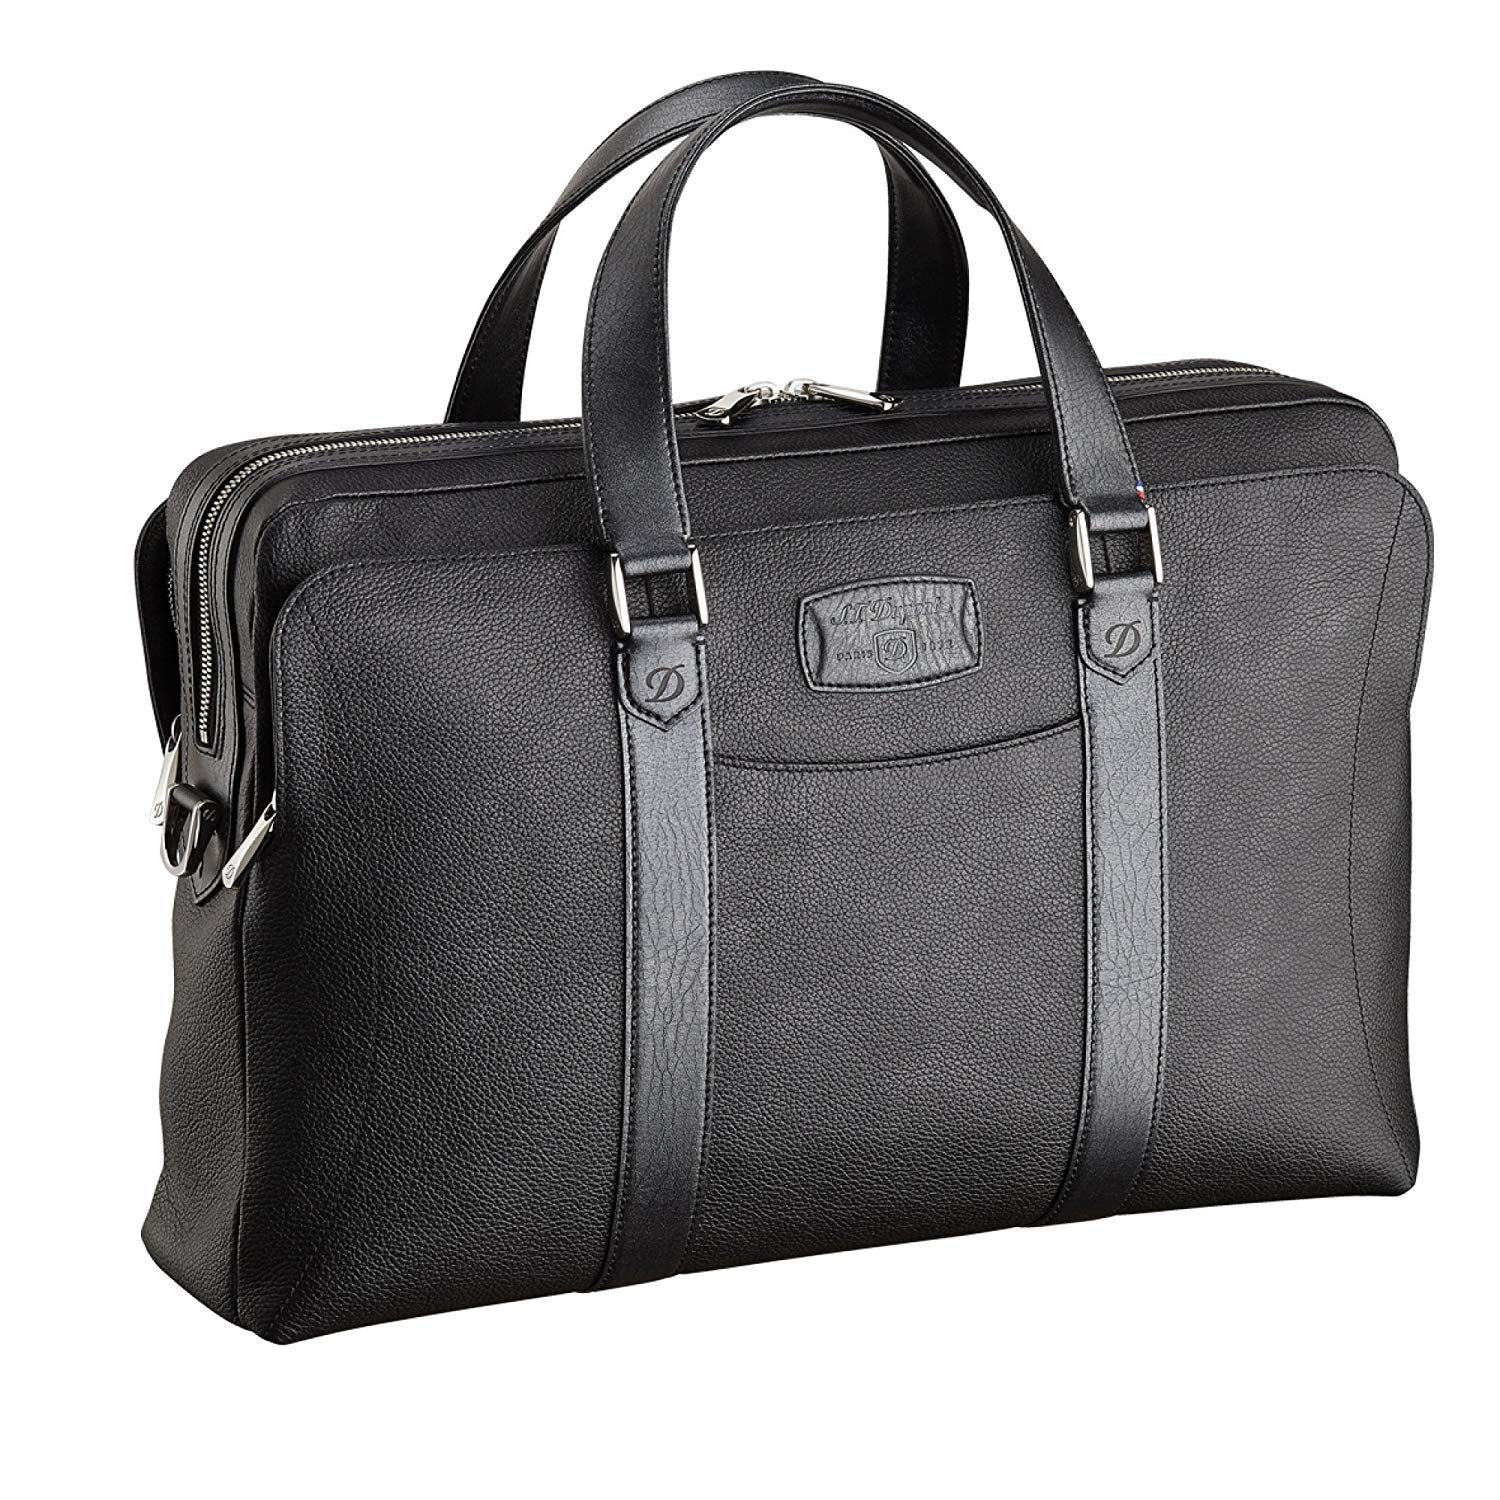 S.T Dupont D-181255 Line D Soft Diamond Grained Leather Laptop and Doc Holder - Black